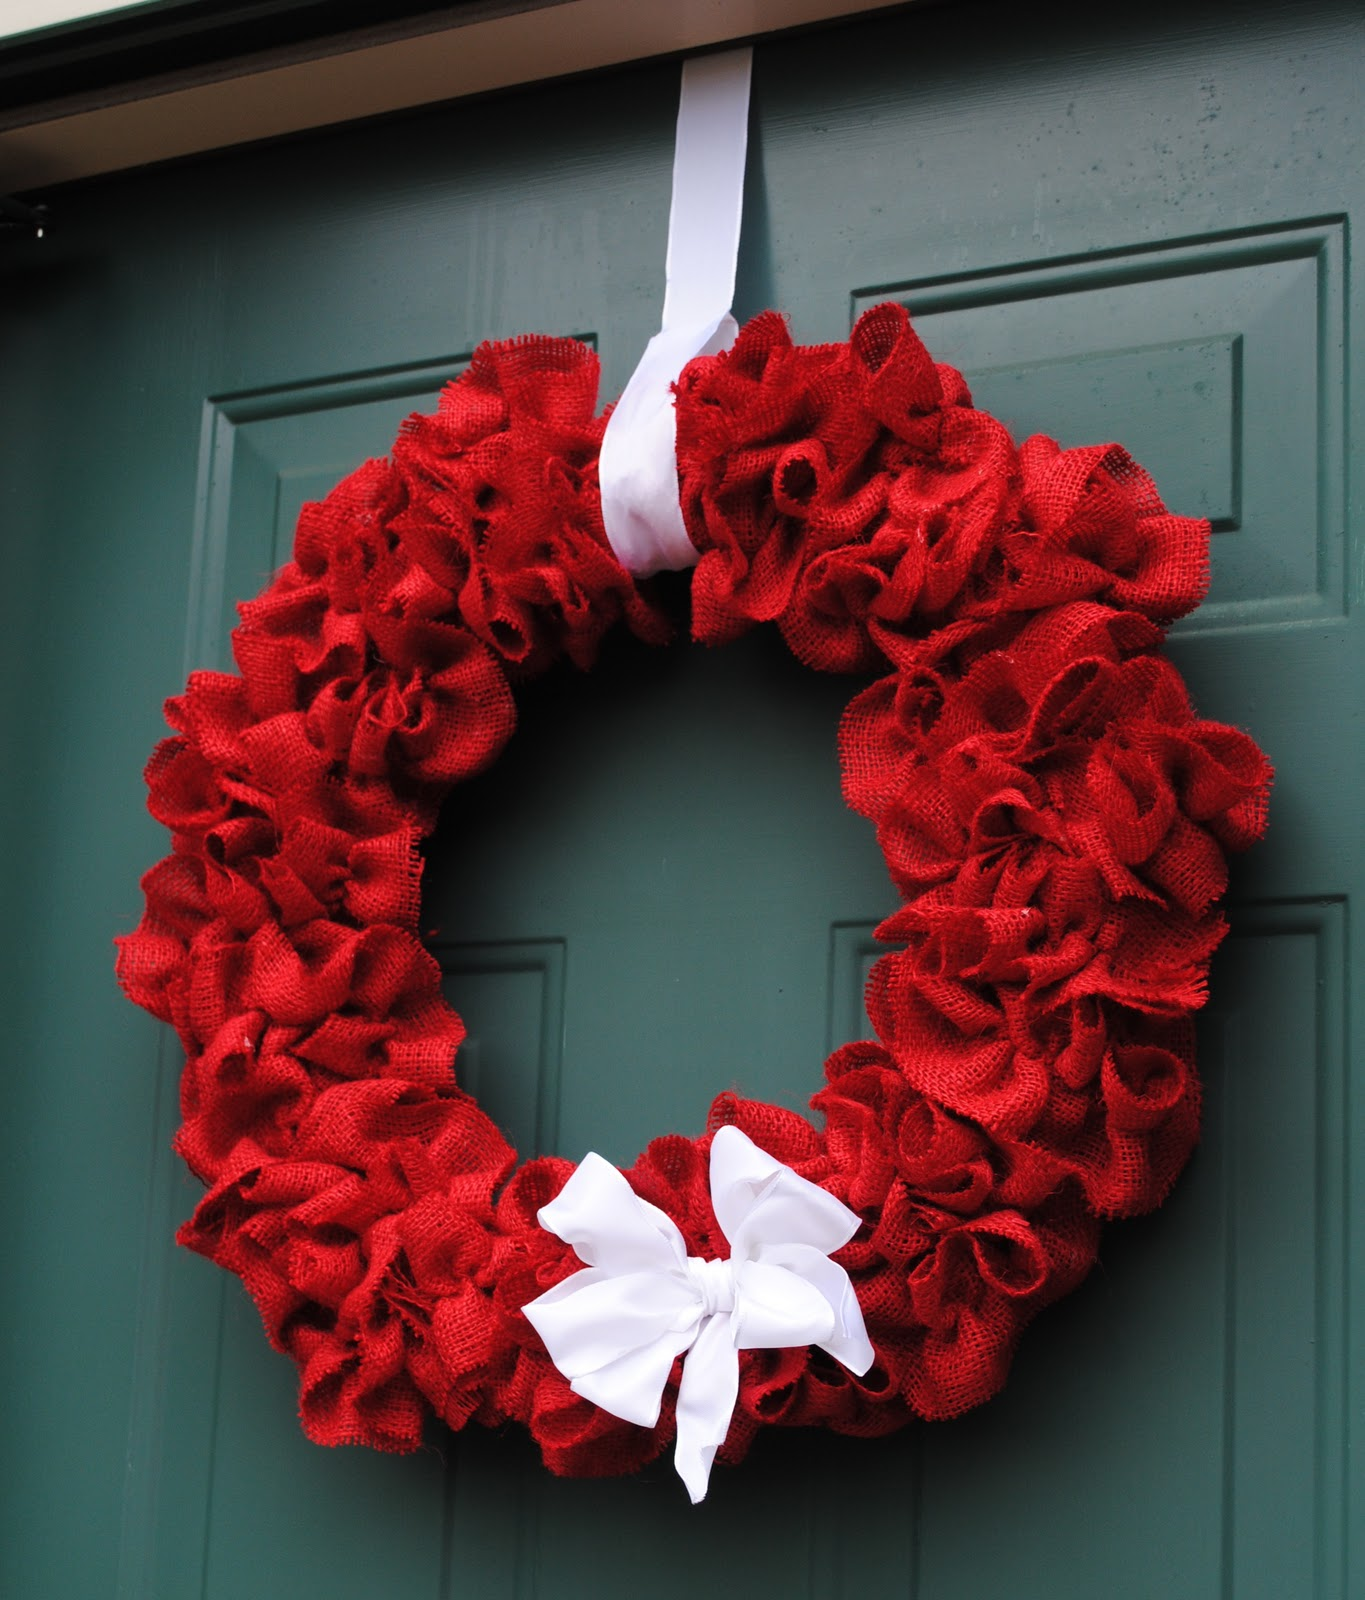 New south design ruffled burlap wreath for 20 Making wreaths